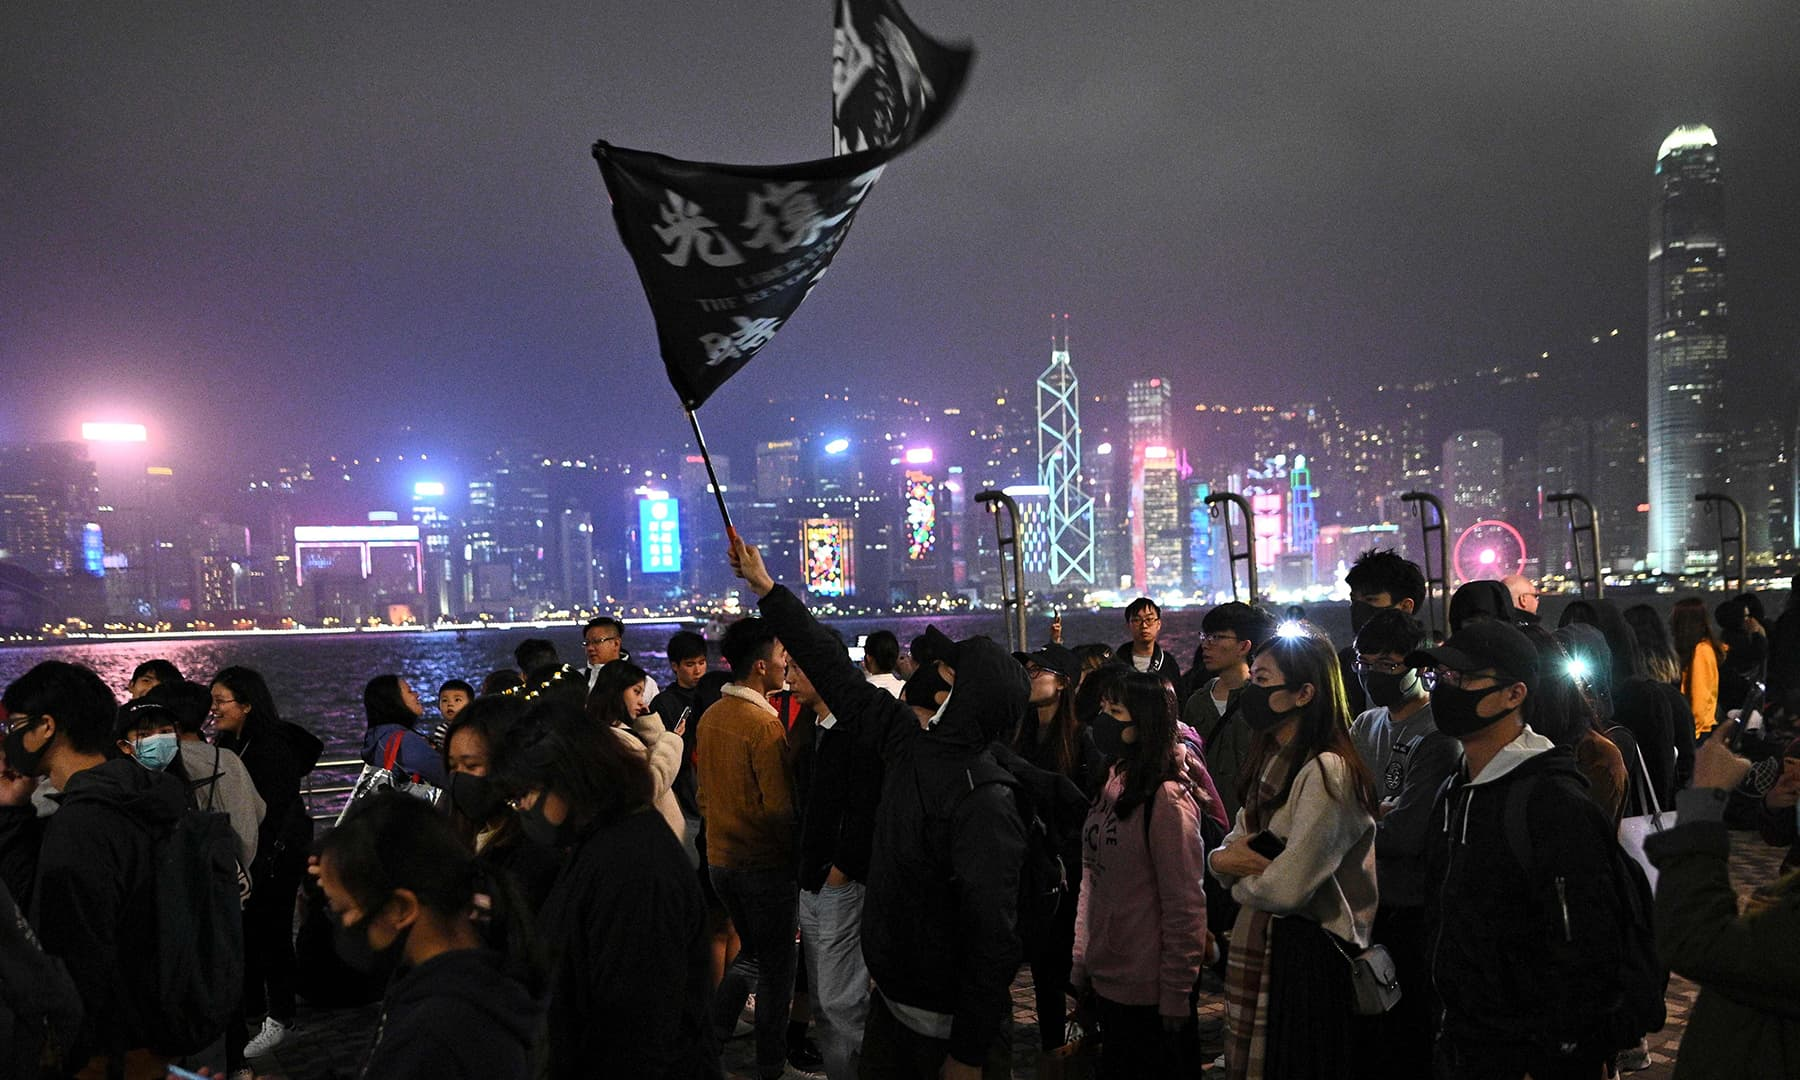 Pro-democracy protesters take part in a march along the promenade of Tsim Sha Tsui district in Hong Kong on Tuesday. — AFP